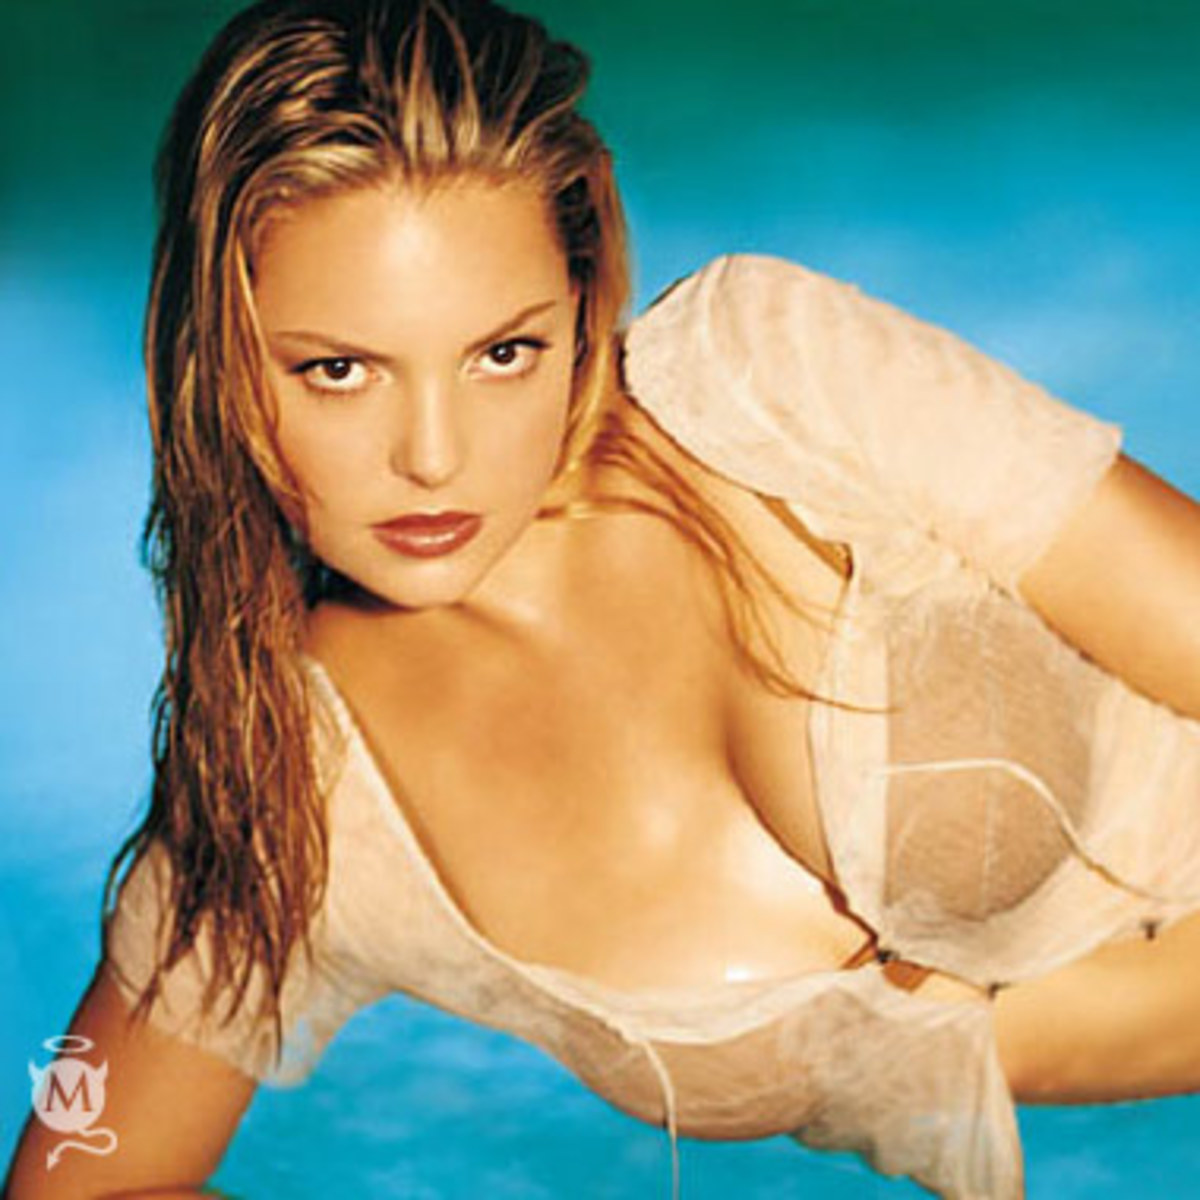 All wet Katherine Heigl